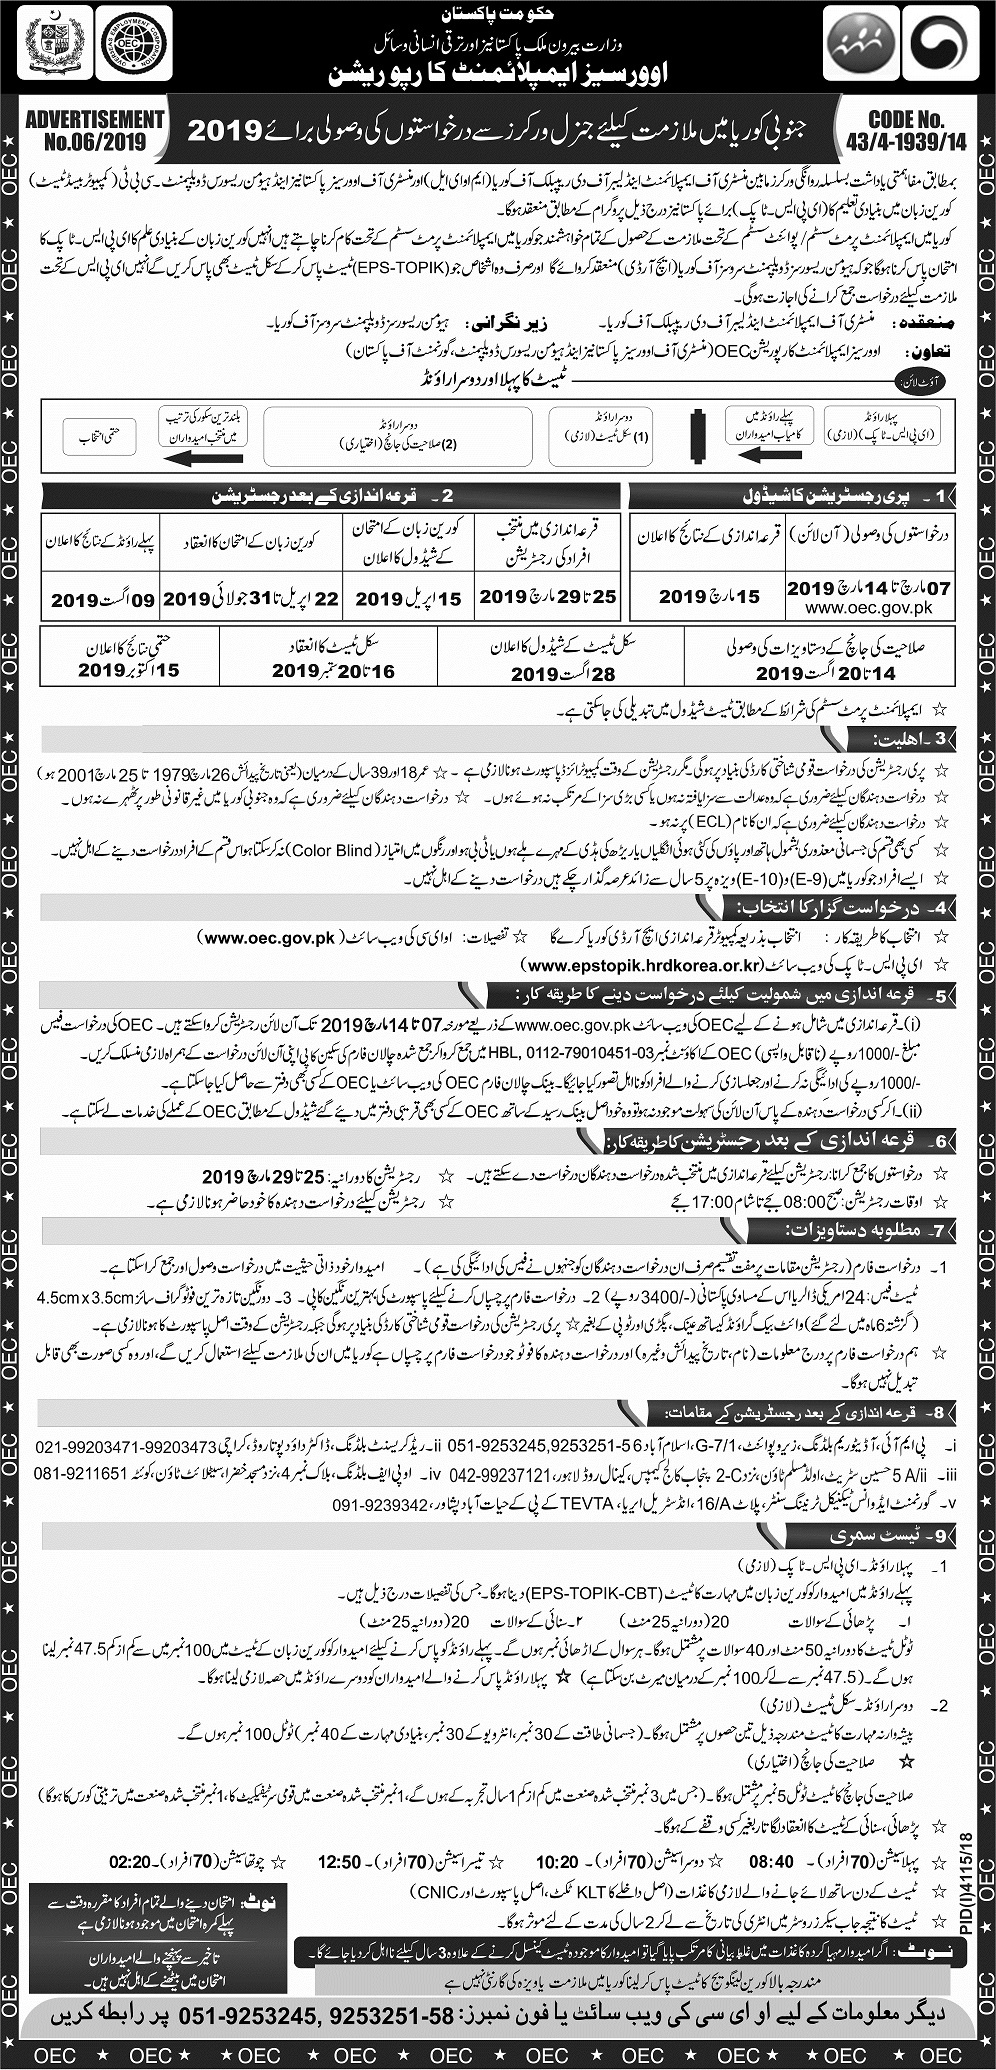 oec.gov.pk Korea 2019 Advertisement Jobs